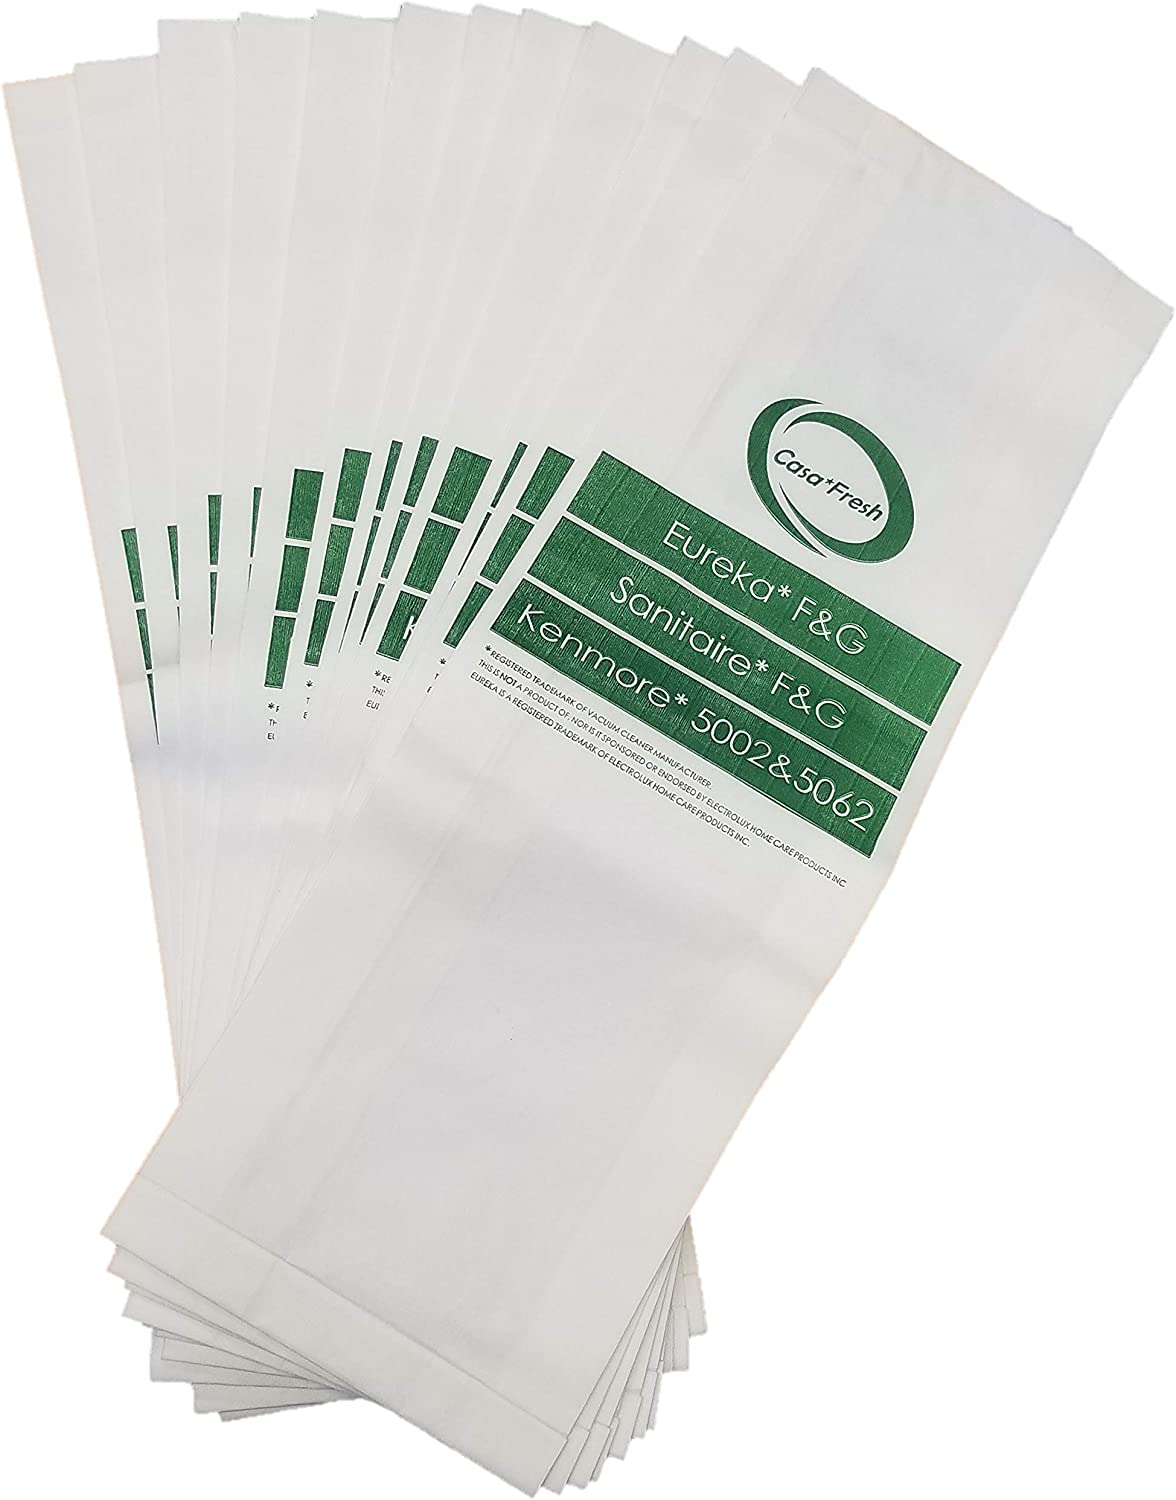 12 Bags for Eureka Style FG service Lowest price challenge Sanitaire F Cleaner G Vacuum Commer